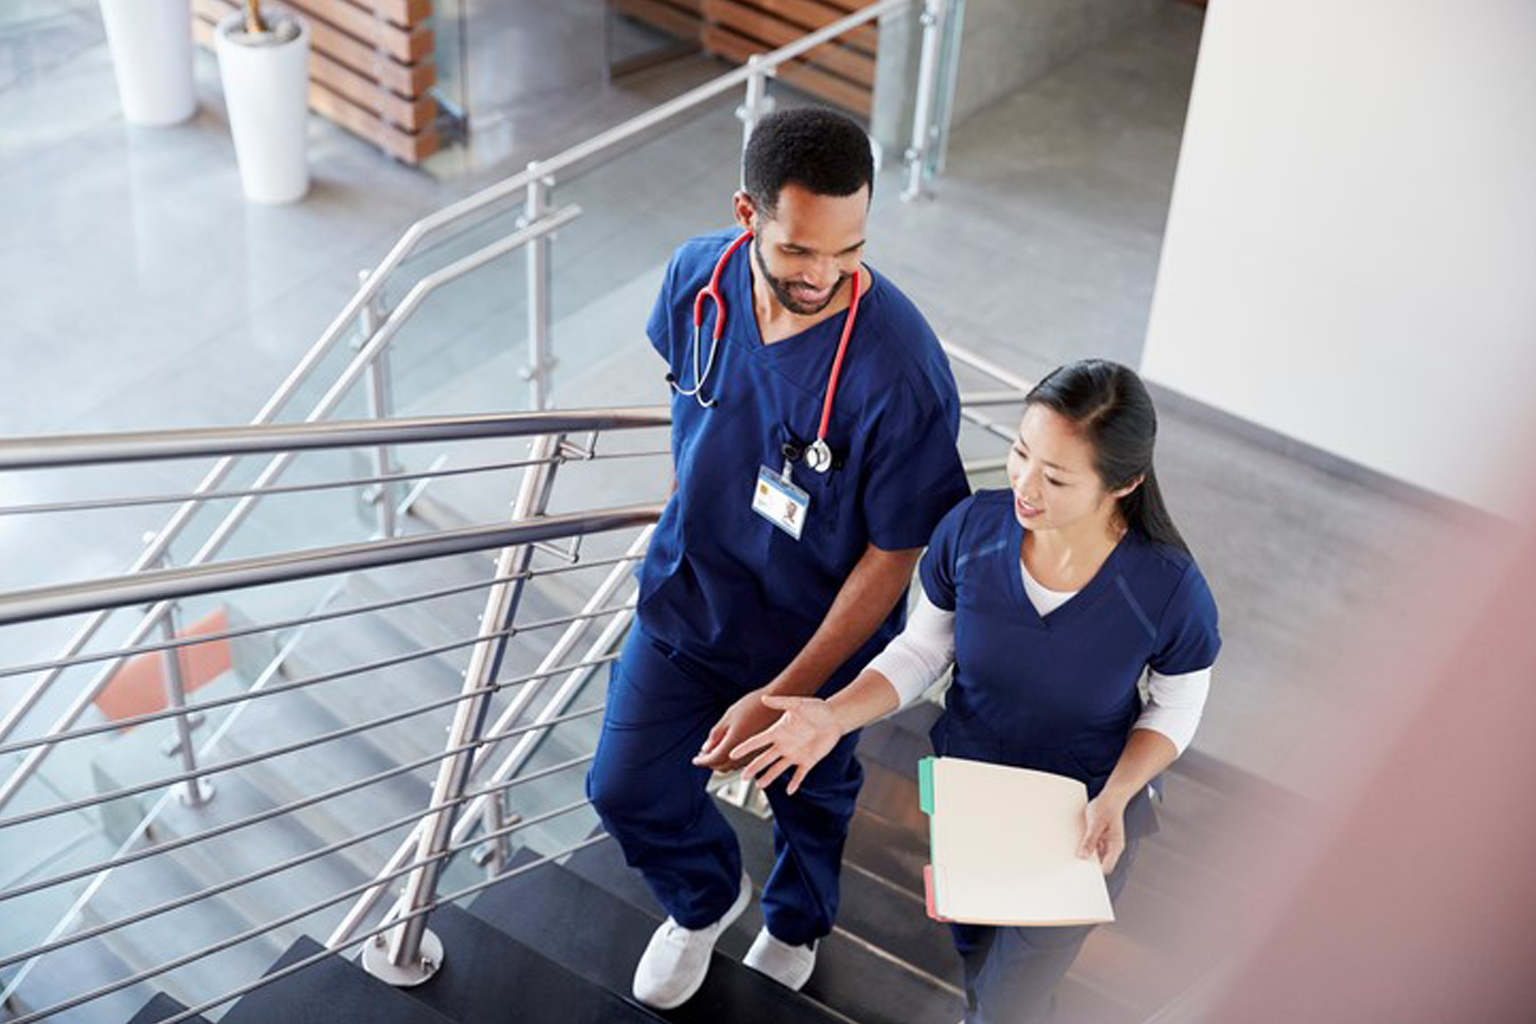 Two nurses walking up stairs in a hospital